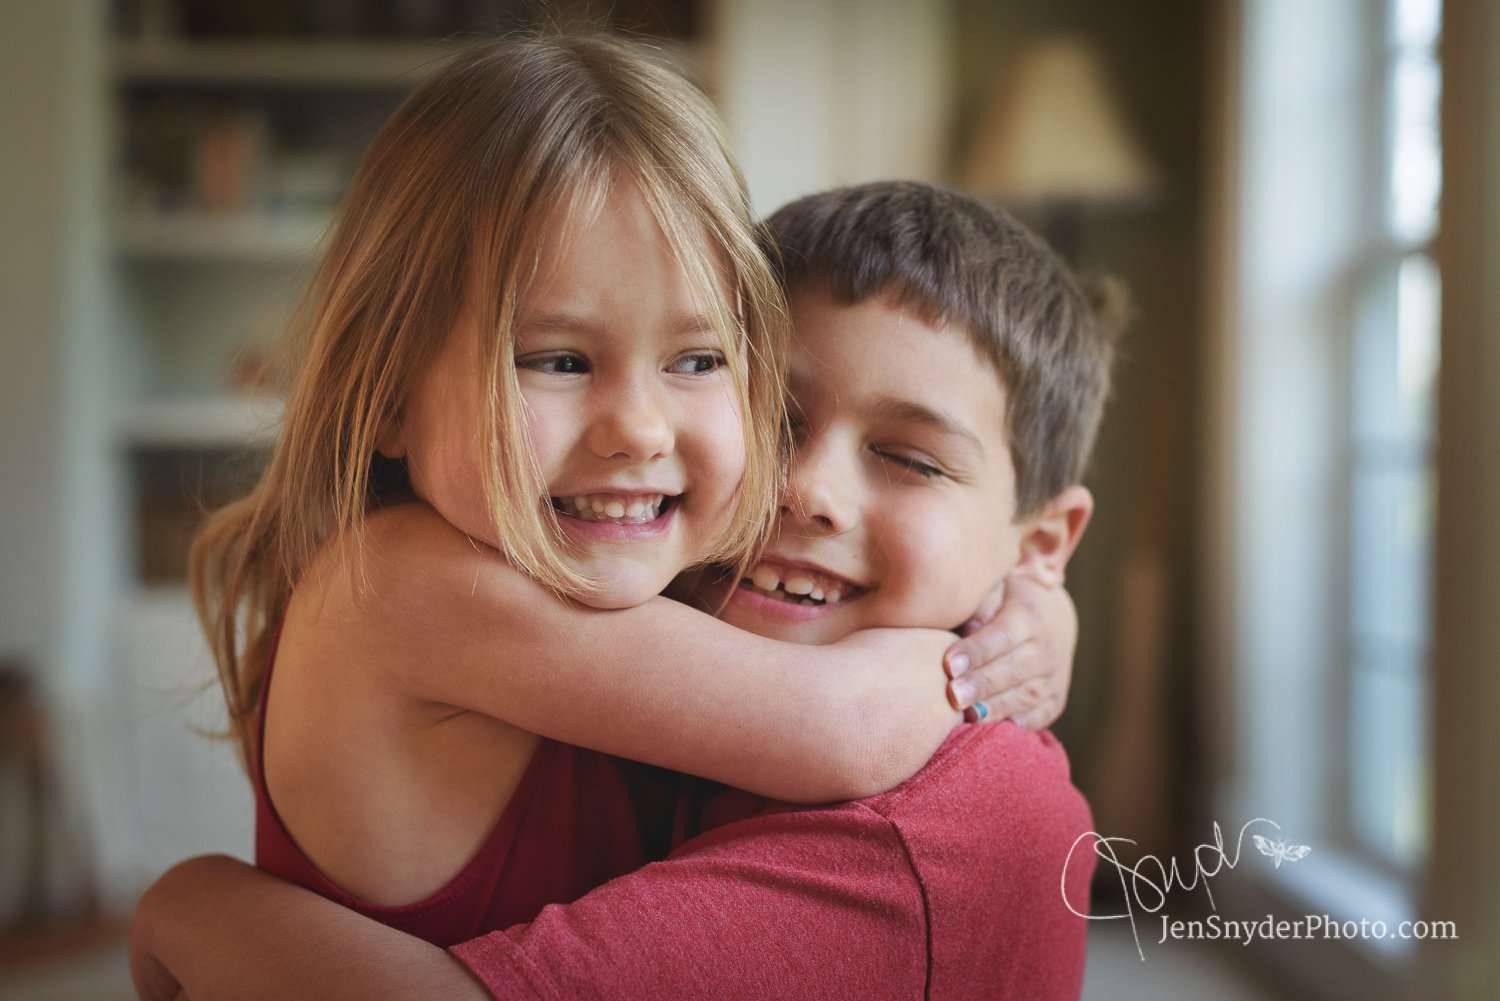 Harford County childrens photographer Jen Snyder http://www.jensnyderphoto.com